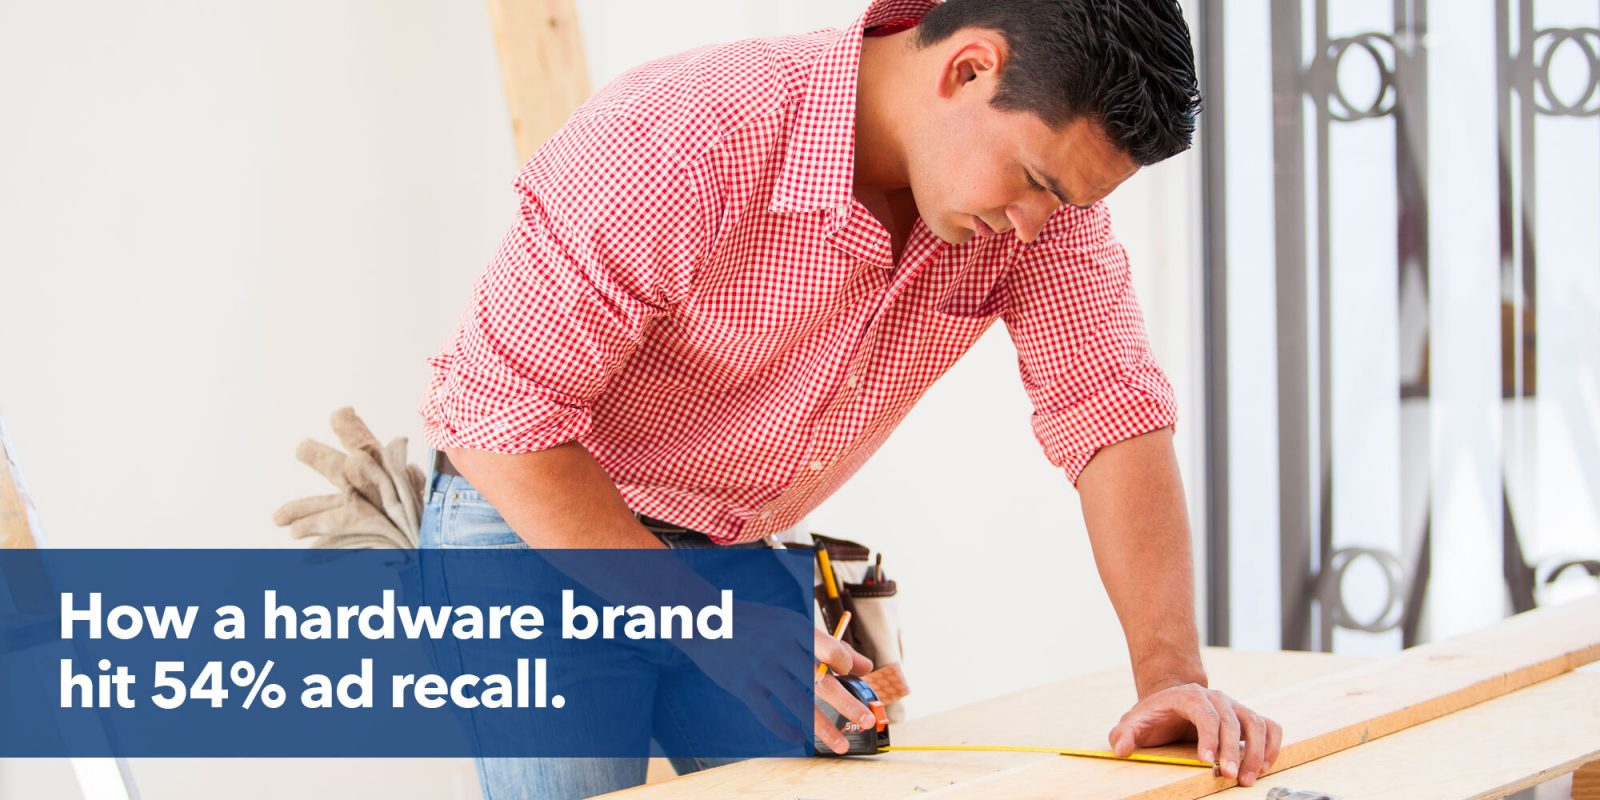 How a hardware brand hit 54% ad recall.